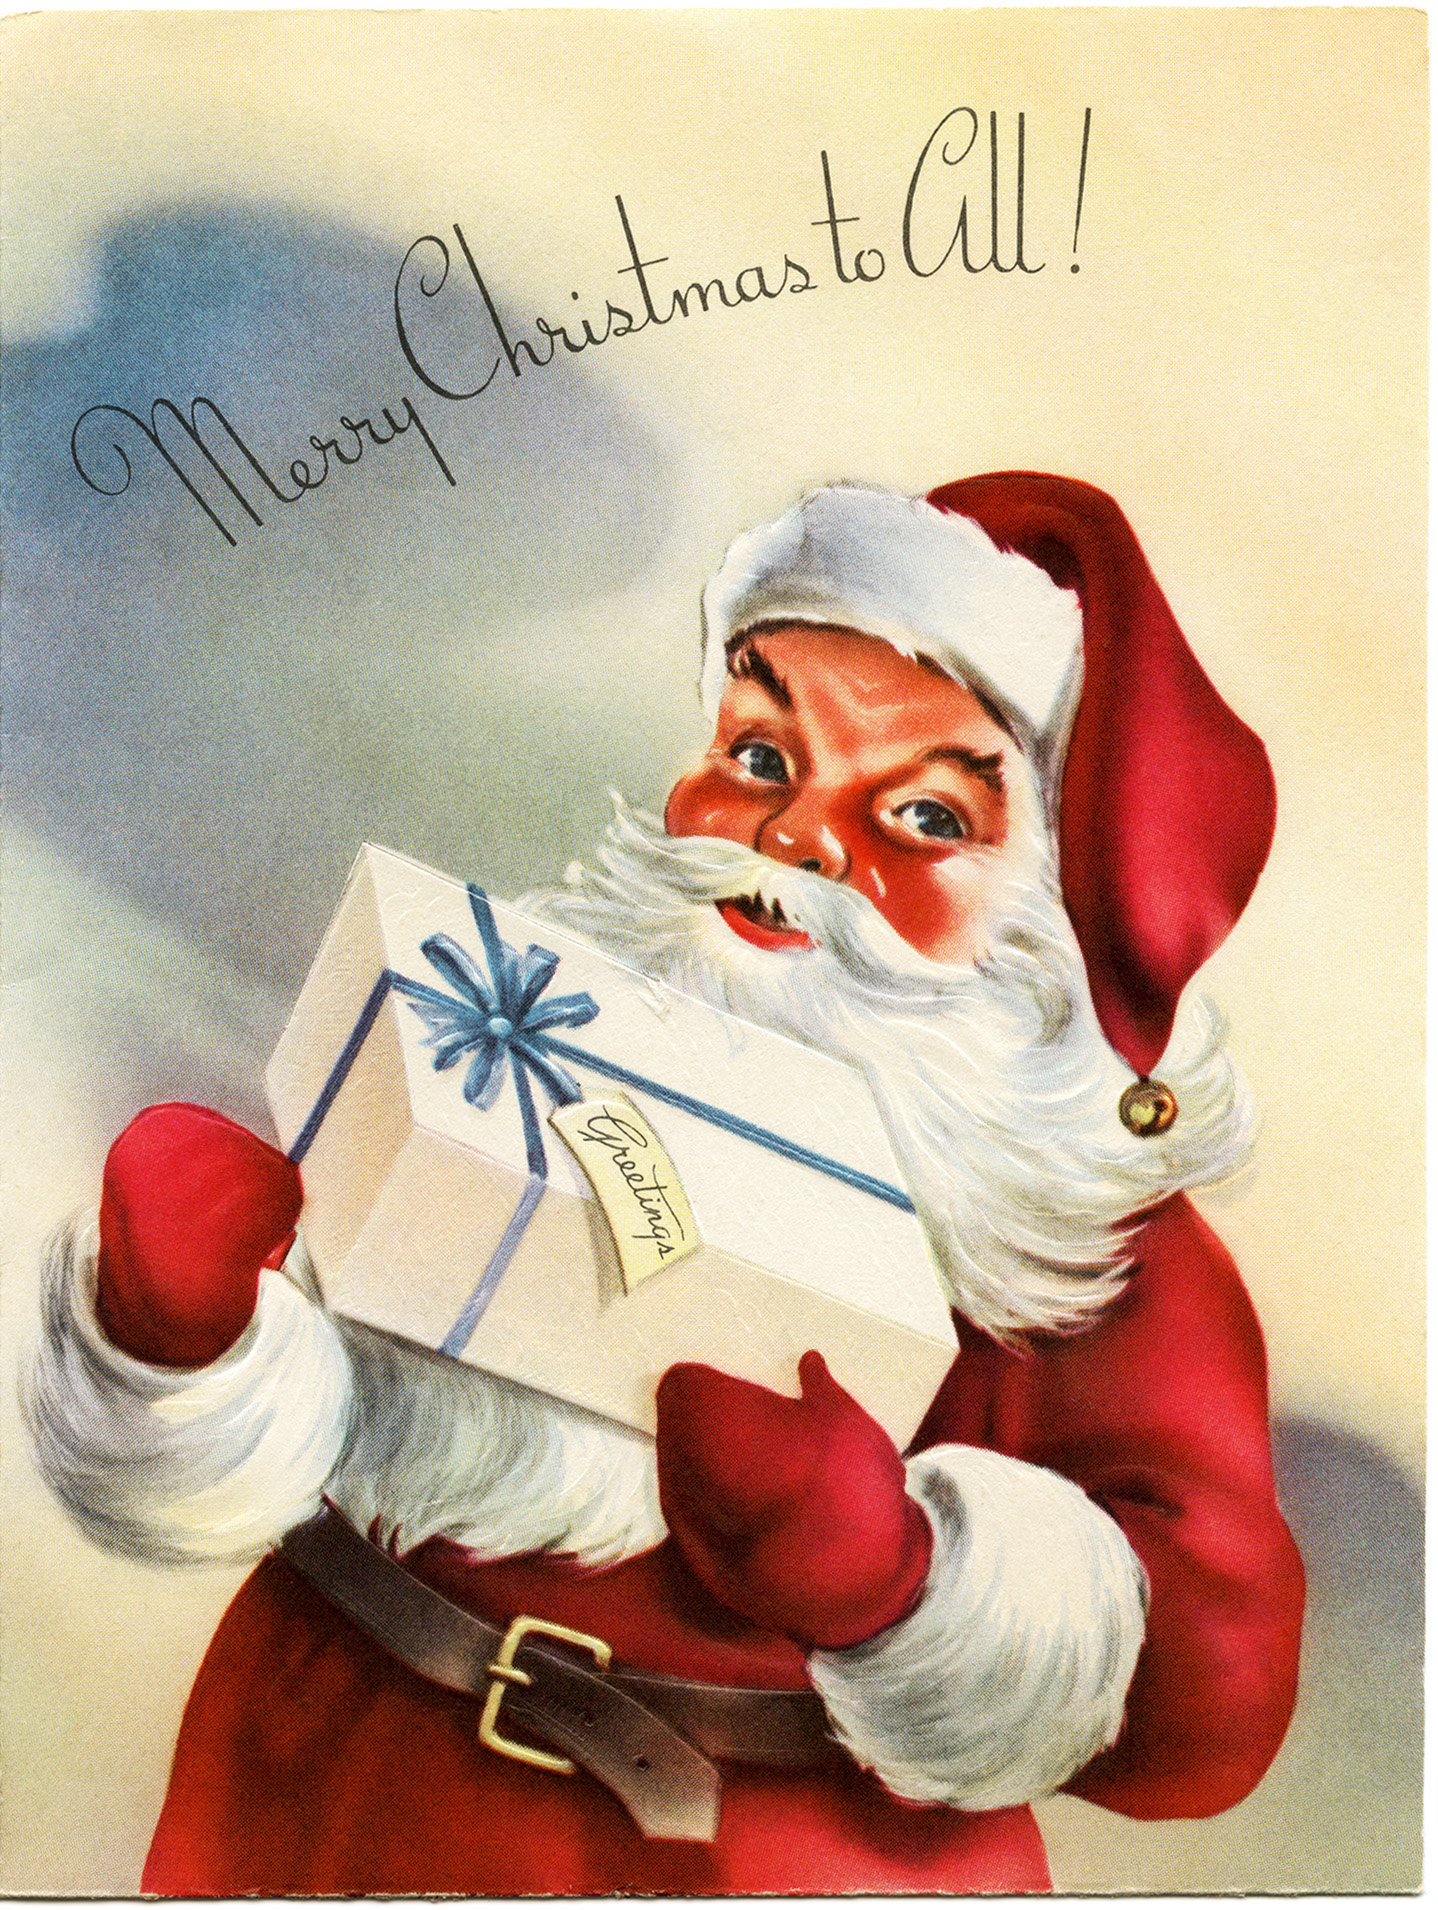 santa clip art, old fashioned christmas card, retro christmas graphic ...